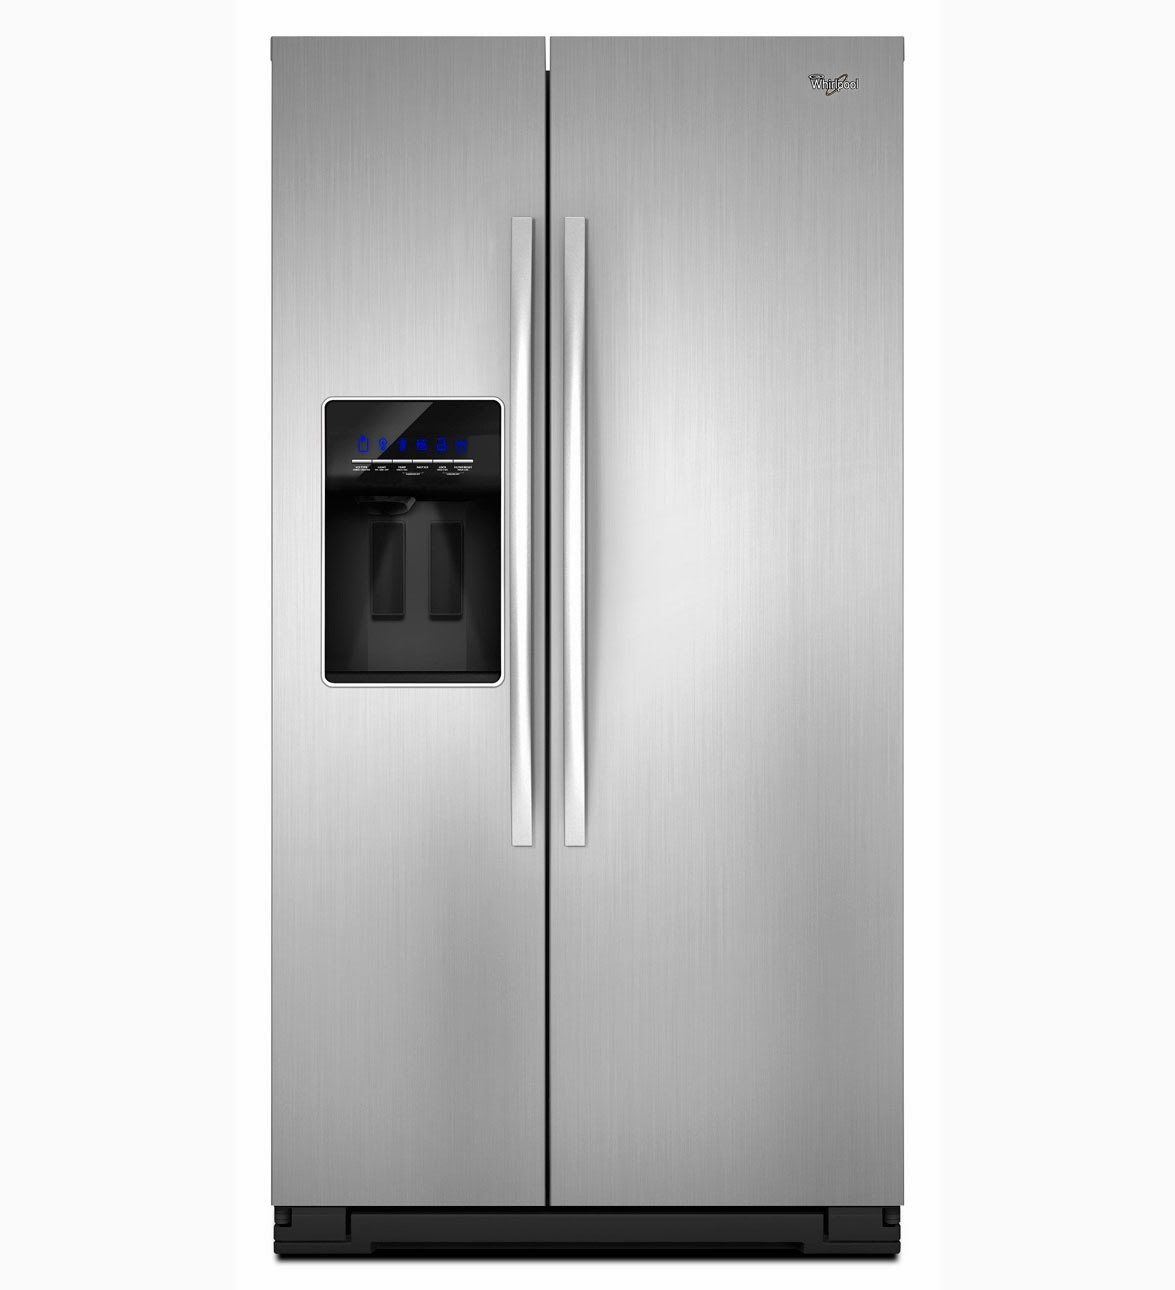 Whirlpool Refrigerator Brand Gsf26c4exs Side By Side